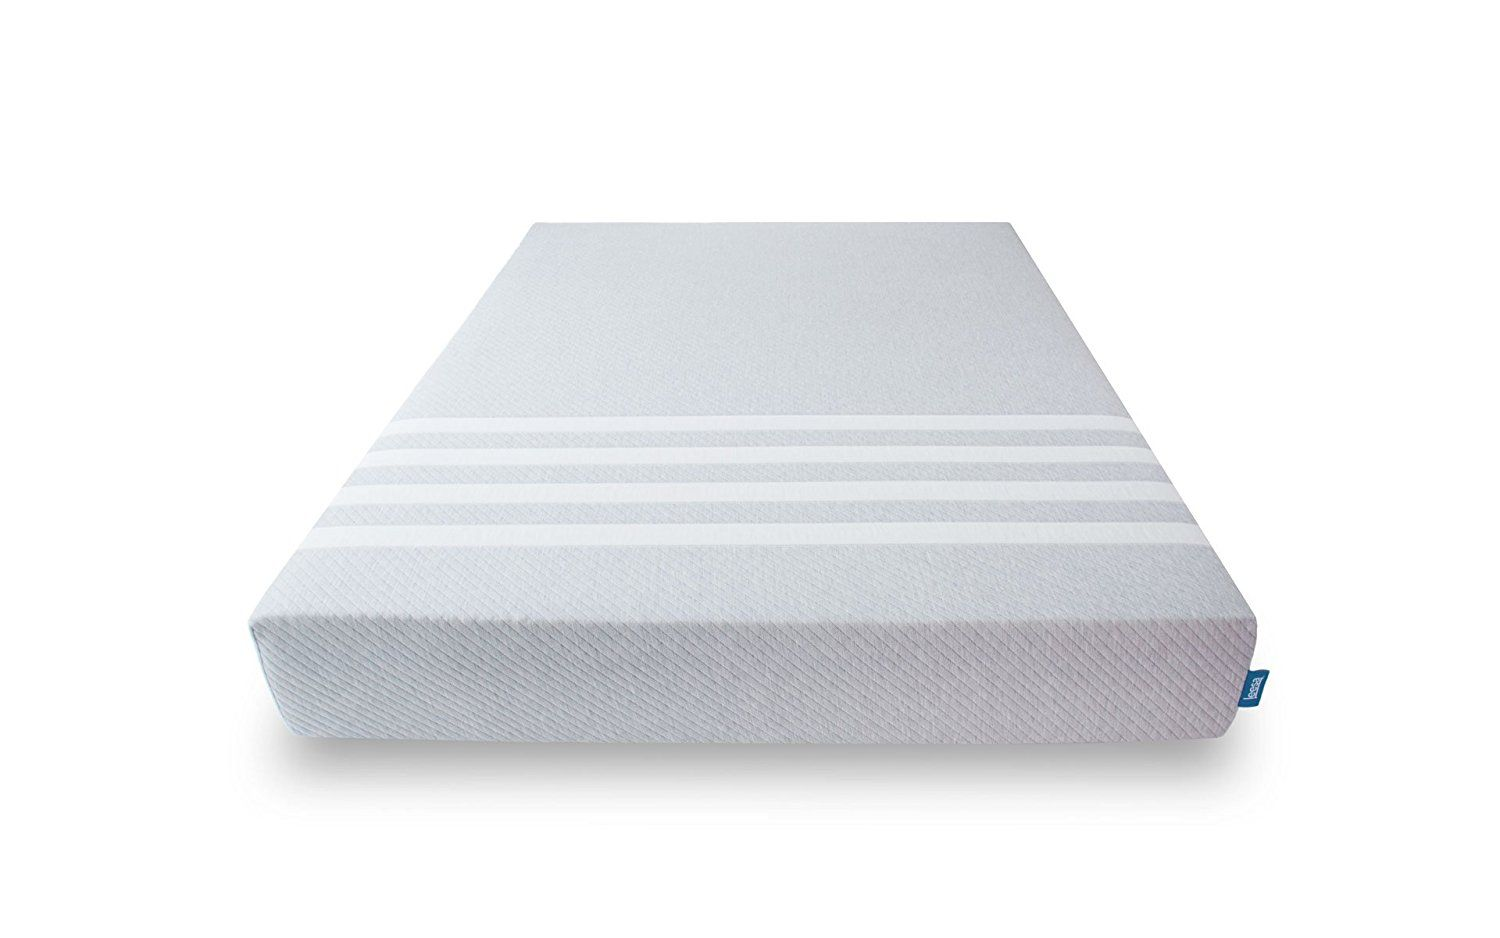 Leesa Mattress Twin Click Image For More Details This Is An Affiliate Link Homedecor Mattress Leesa Mattress Foam Mattress